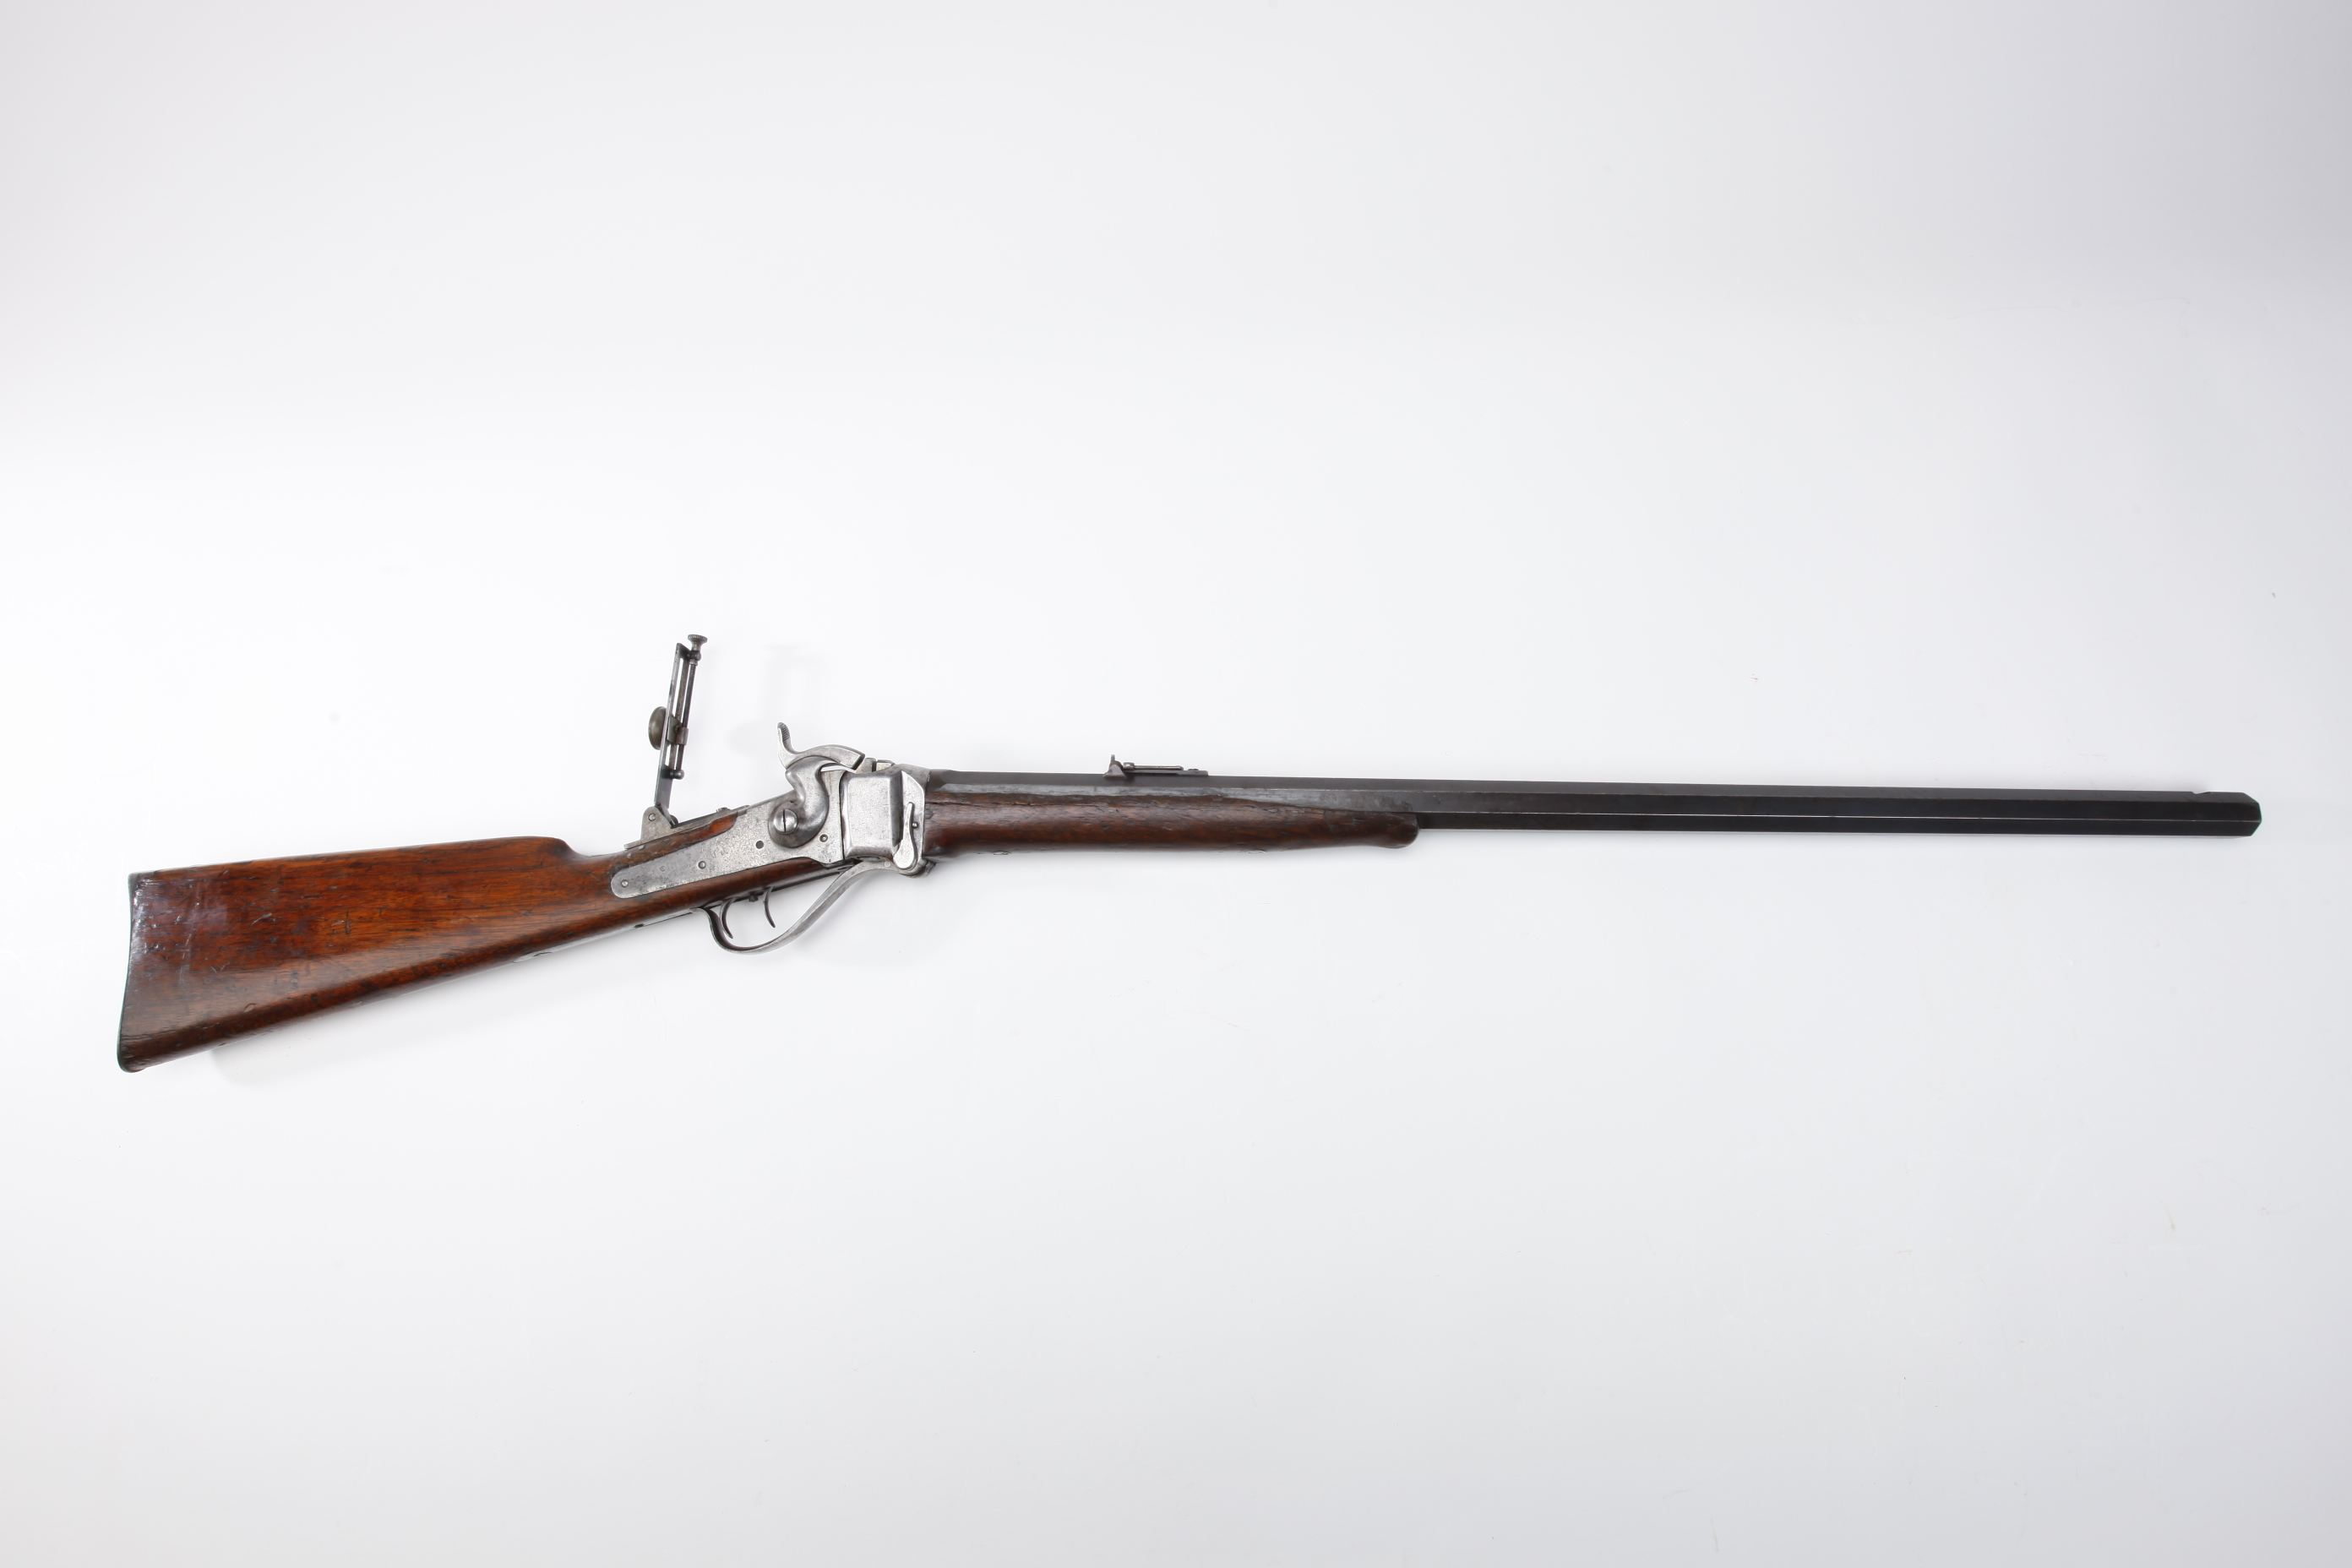 Sharps Model 1874 Old Reliable Single Shot Falling Block Rifle (1)